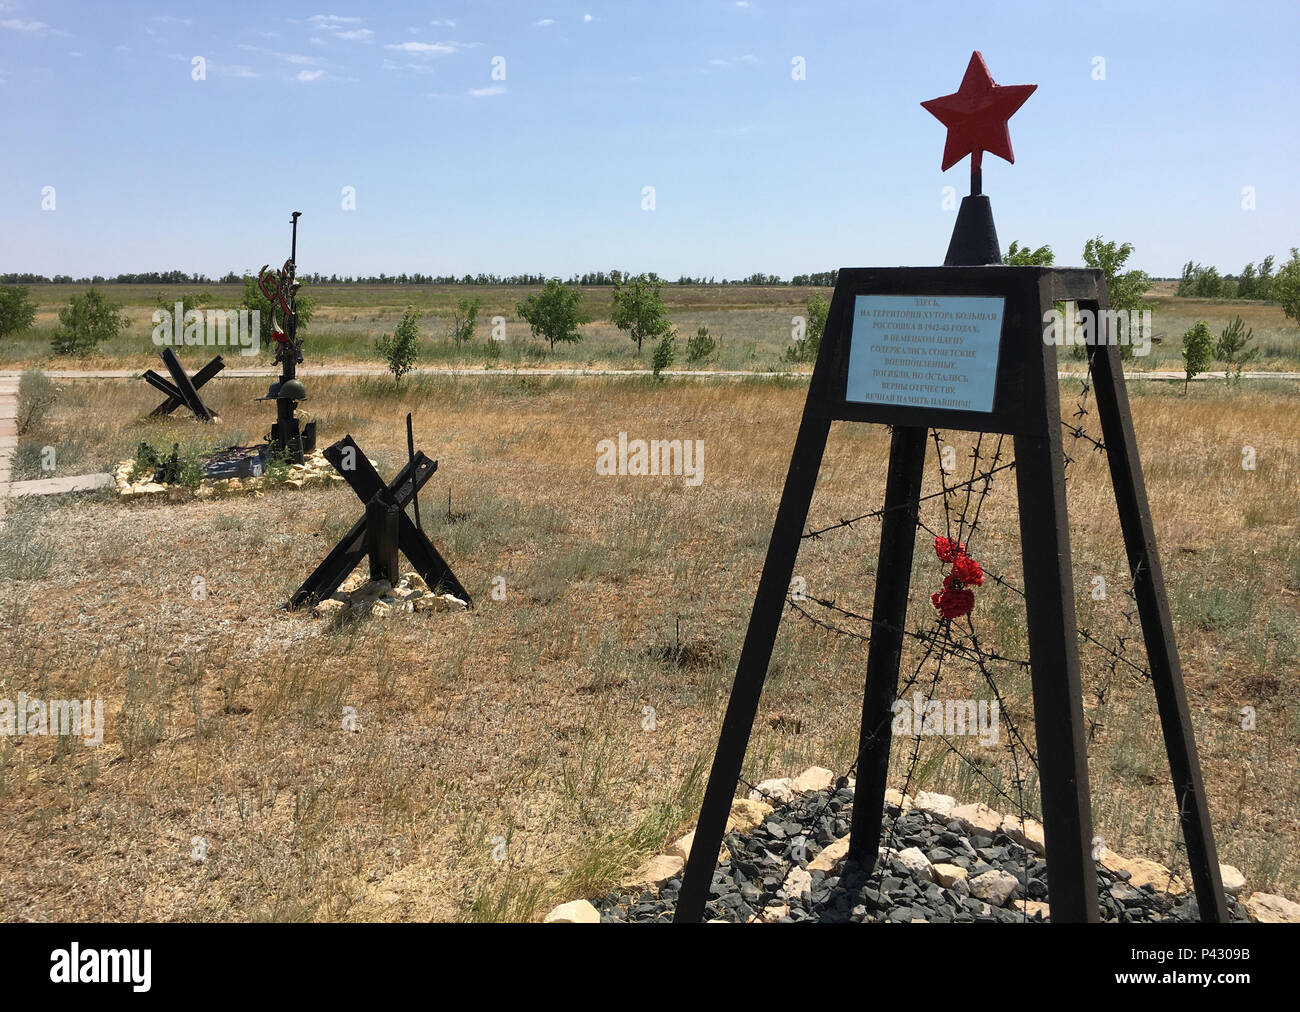 Rossoschka, Russia. 16th June, 2018. A red star stands on a steel framework wrapped in barbed wire behind the anti-tank barriers on the «Rossoschka Military Cemetery». Here not only soldiers of the German Wehrmacht are buried, but also members of the Red Army. Only a narrow street separates today's opponents. The remote memorial commemorates one of the worst chapters in World War II: the Battle of Stalingrad. Credit: Martin Moravec/dpa/Alamy Live News - Stock Image